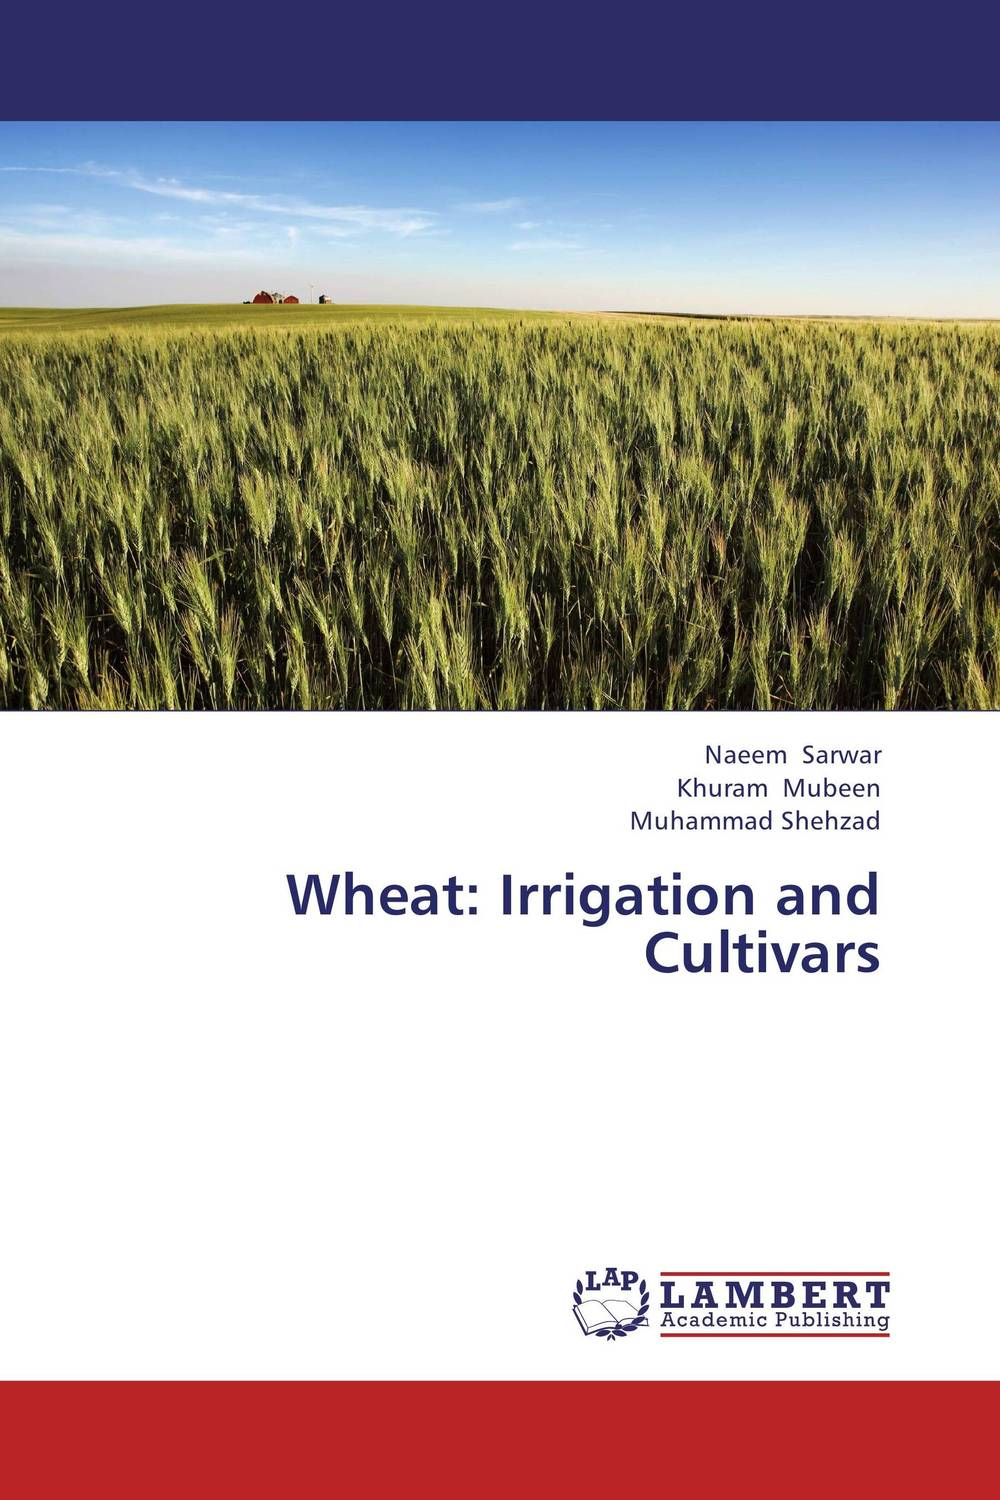 Wheat: Irrigation and Cultivars purnima sareen sundeep kumar and rakesh singh molecular and pathological characterization of slow rusting in wheat